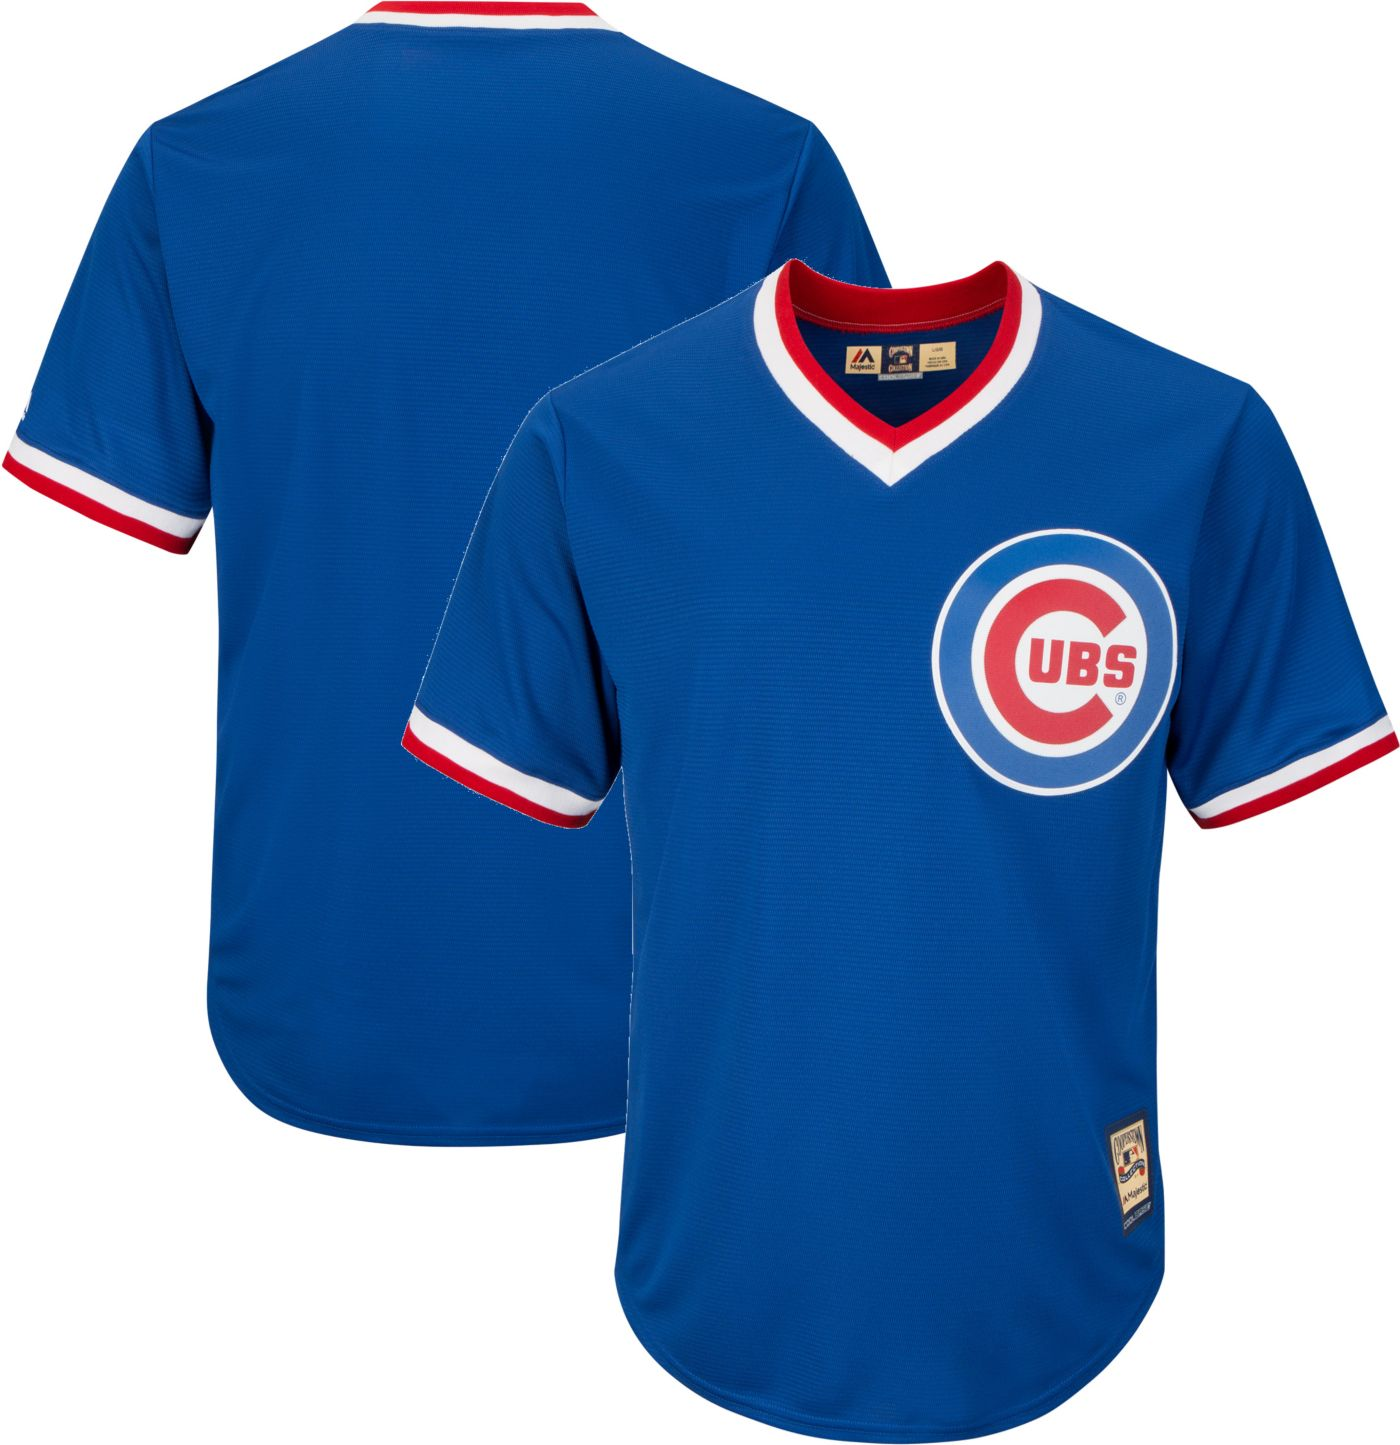 Majestic Men's Replica Chicago Cubs Cool Base Royal Cooperstown Jersey